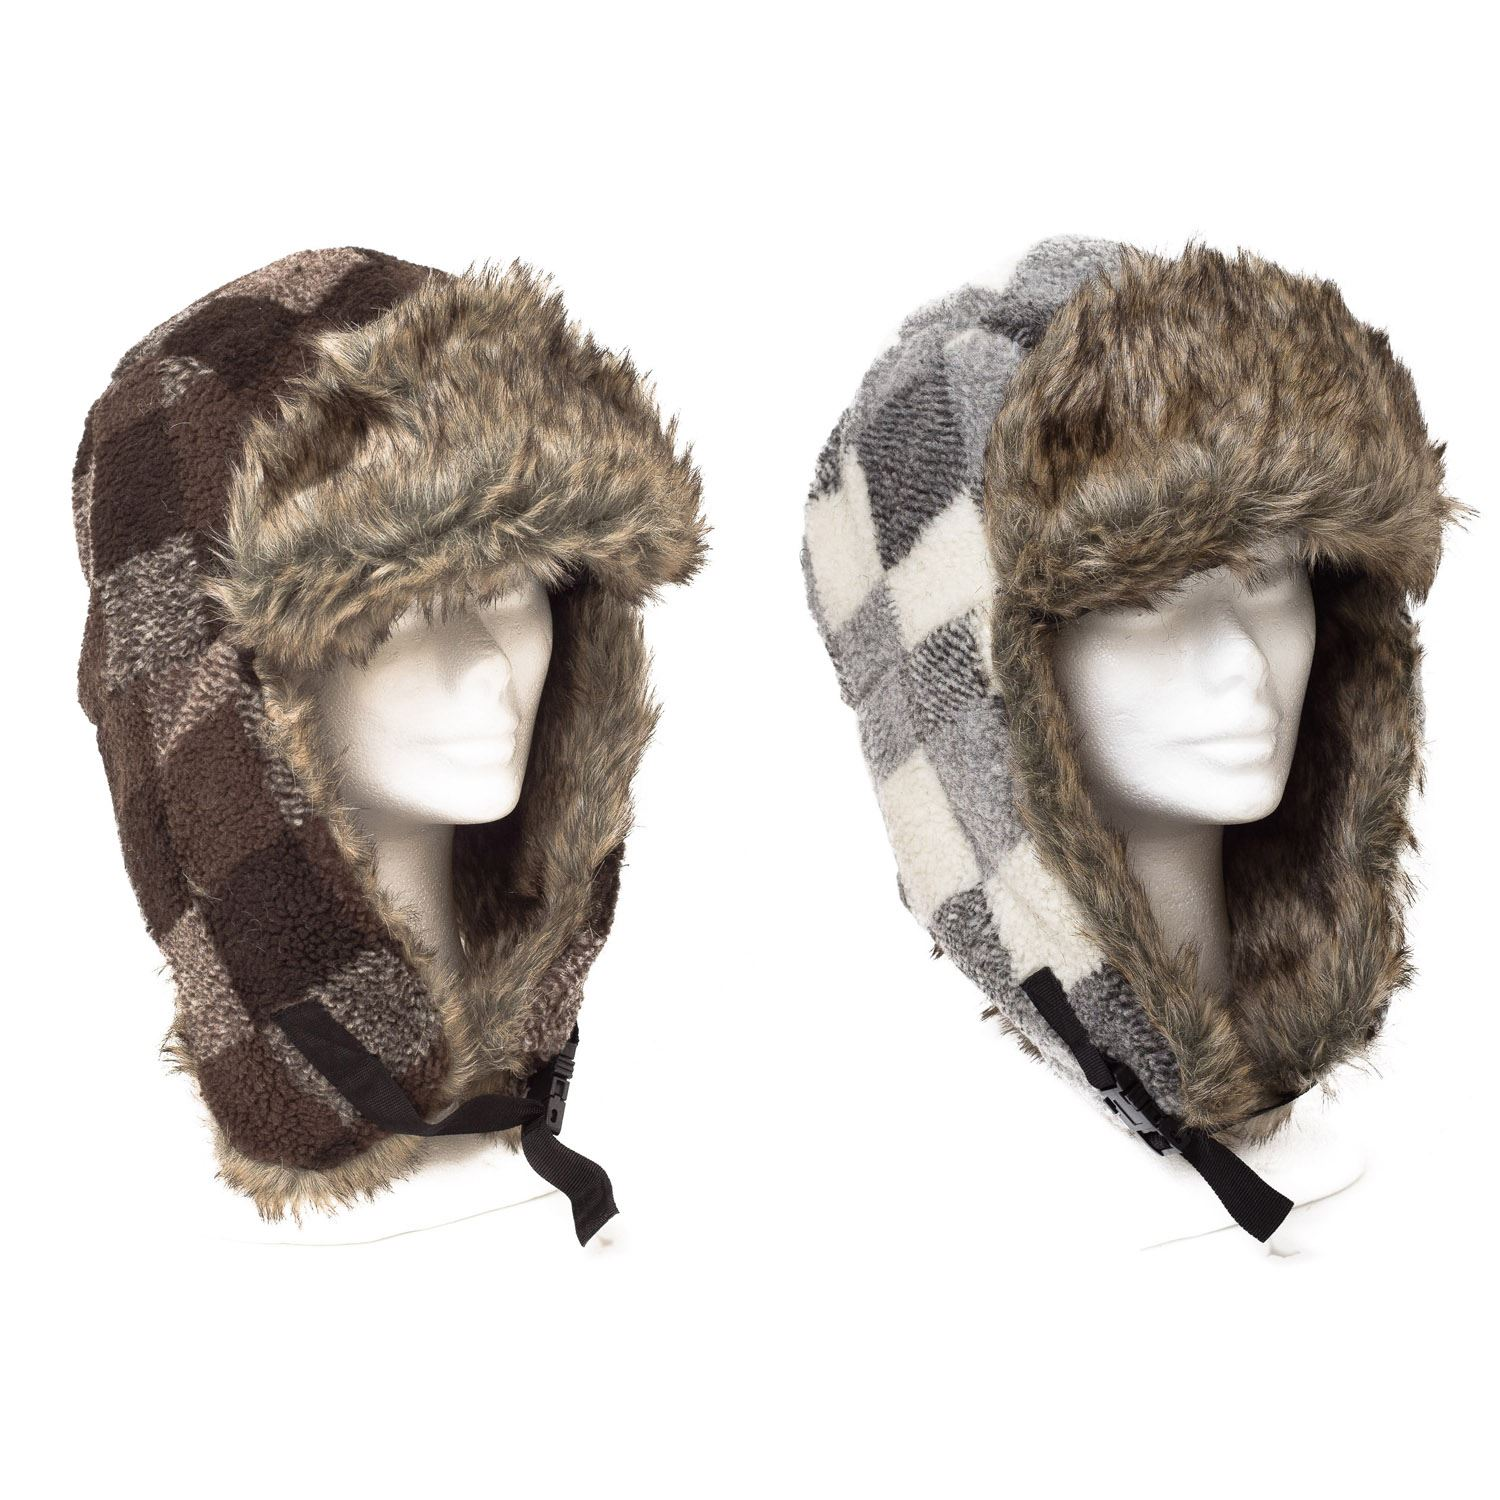 You searched for: fur ear flap hat! Etsy is the home to thousands of handmade, vintage, and one-of-a-kind products and gifts related to your search. No matter what you're looking for or where you are in the world, our global marketplace of sellers can help you find unique and affordable options. Let's get started!